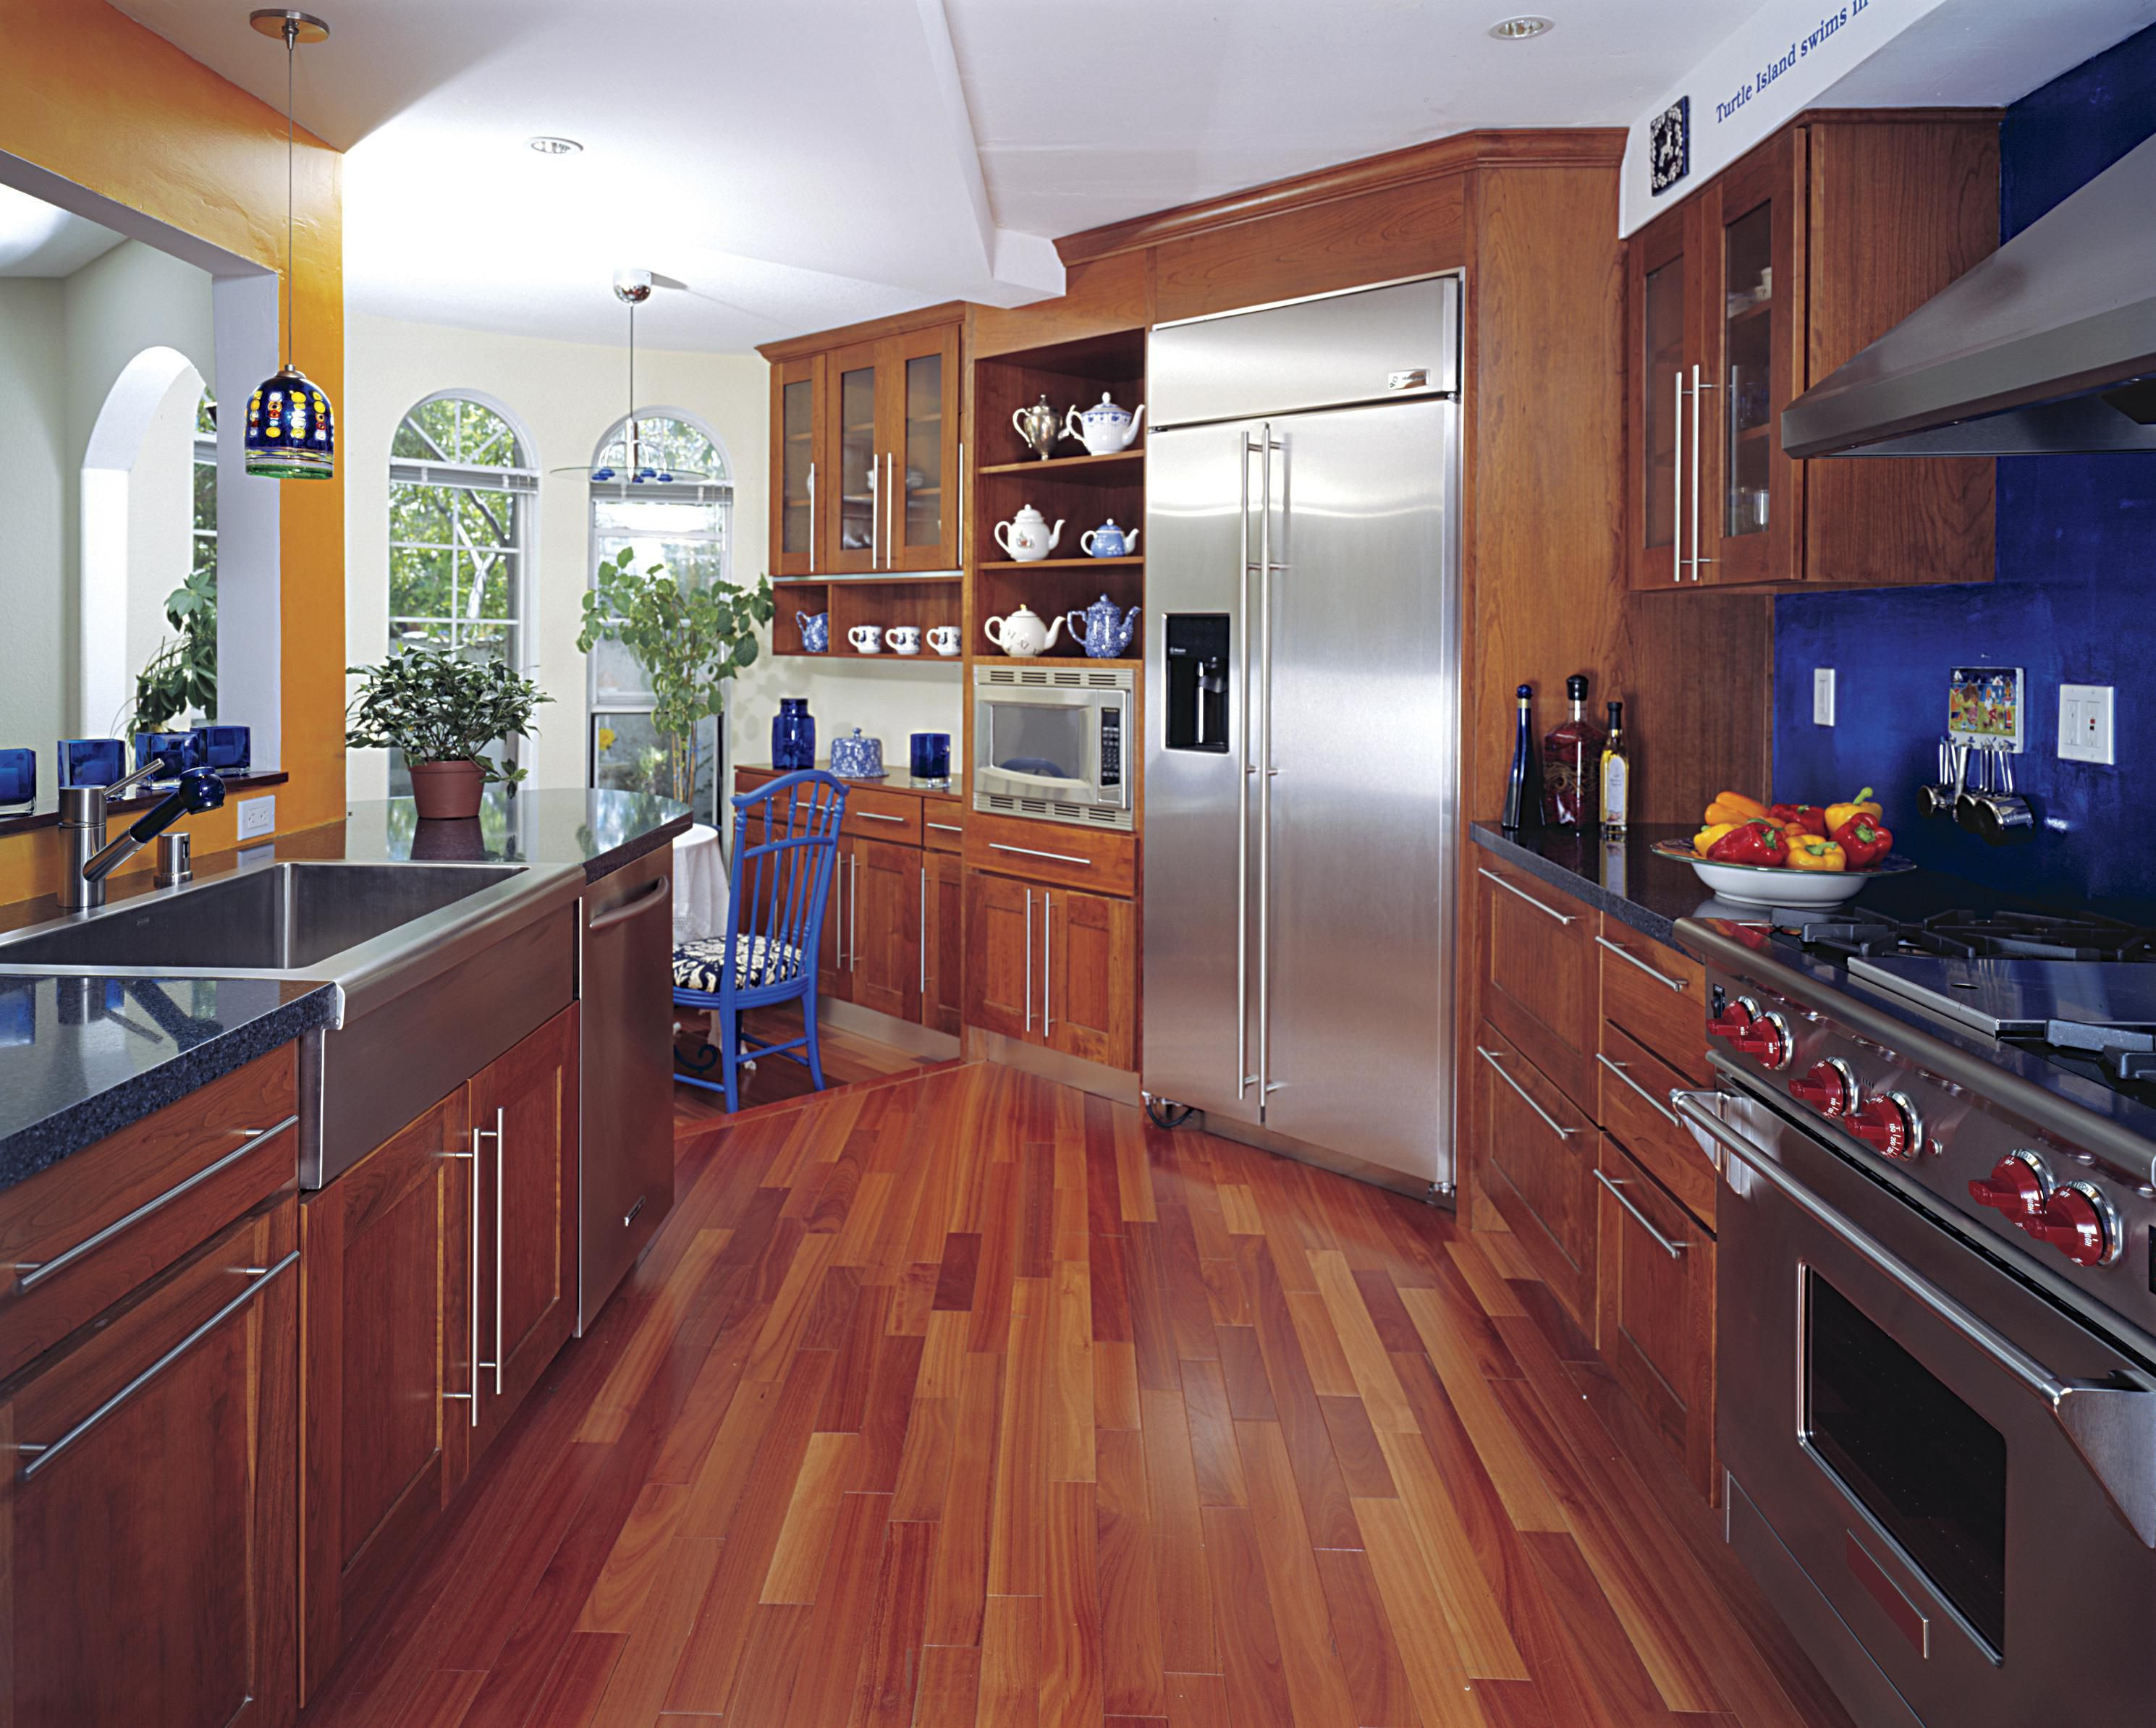 2 1 4 hardwood flooring of hardwood floor in a kitchen is this allowed inside 186828472 56a49f3a5f9b58b7d0d7e142